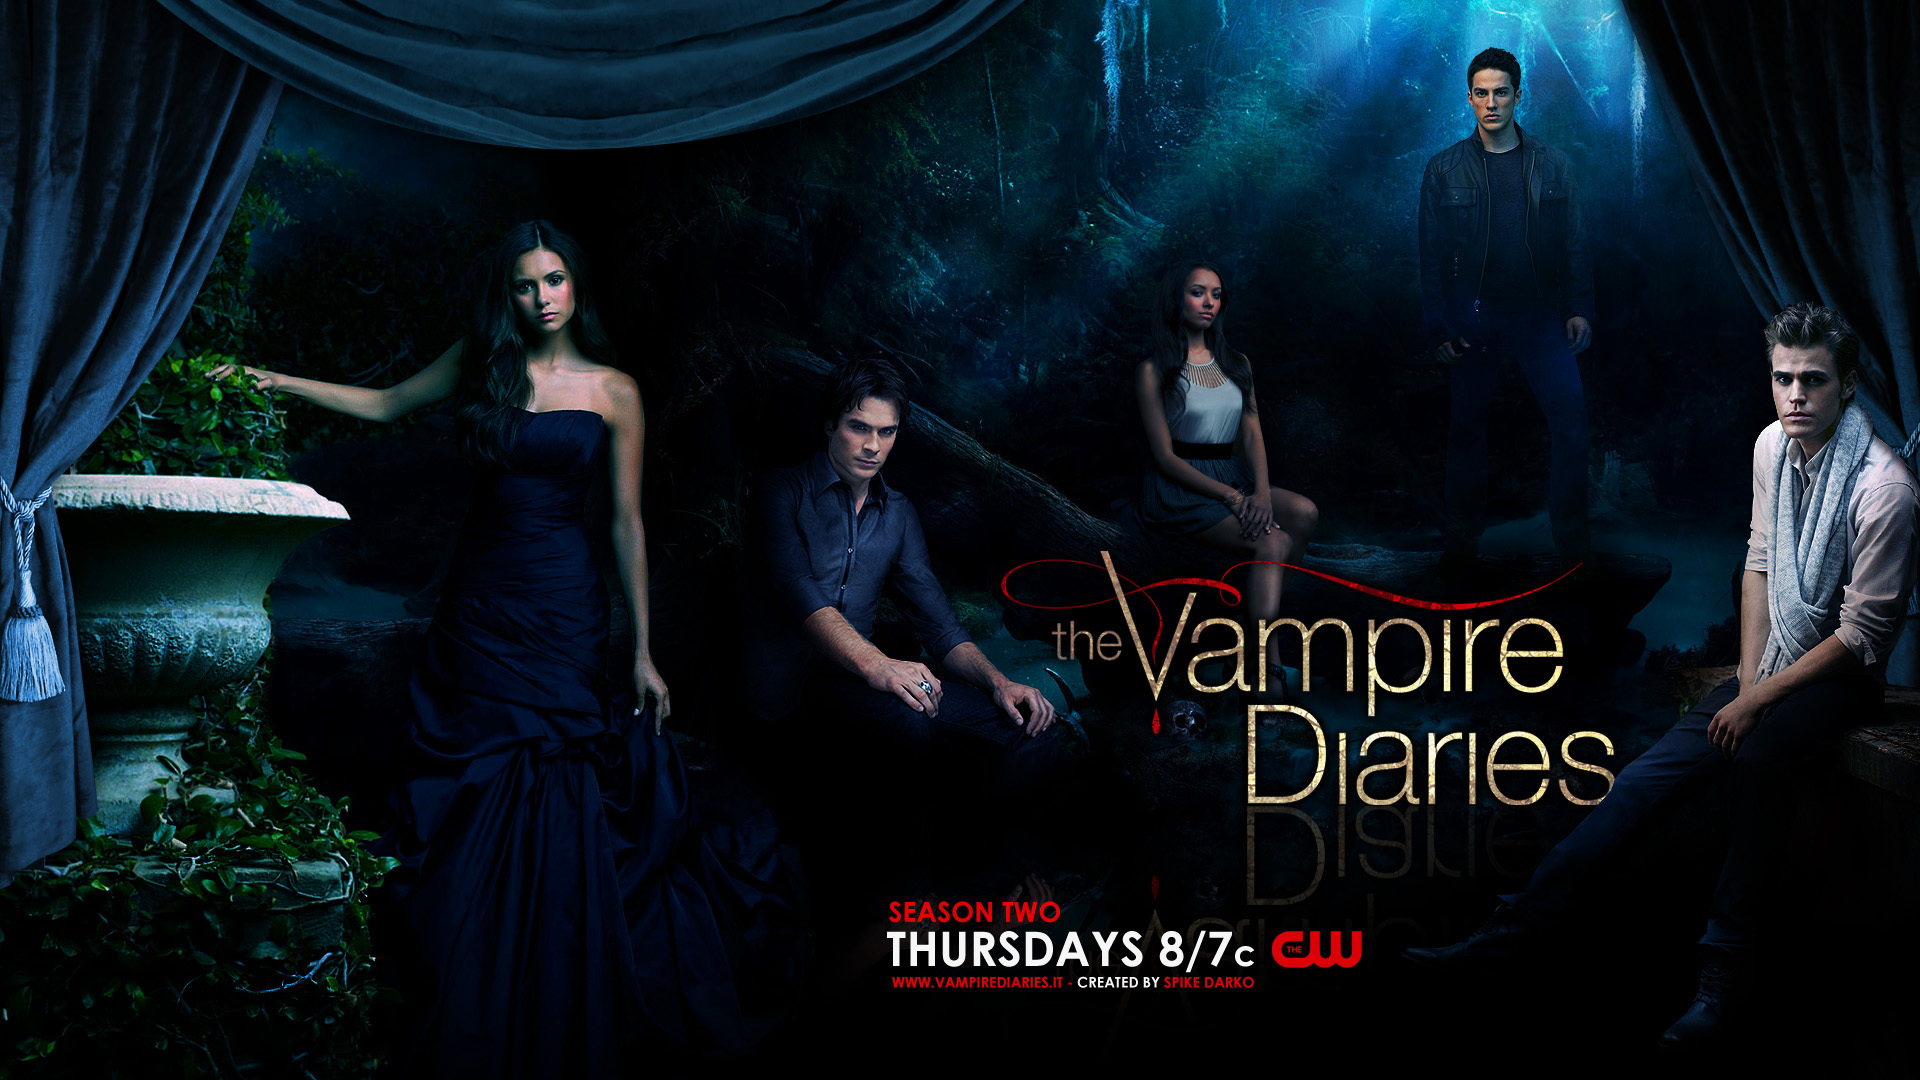 http://images4.fanpop.com/image/photos/15500000/TVD-the-vampire-diaries-tv-show-15539382-1920-1080.jpg